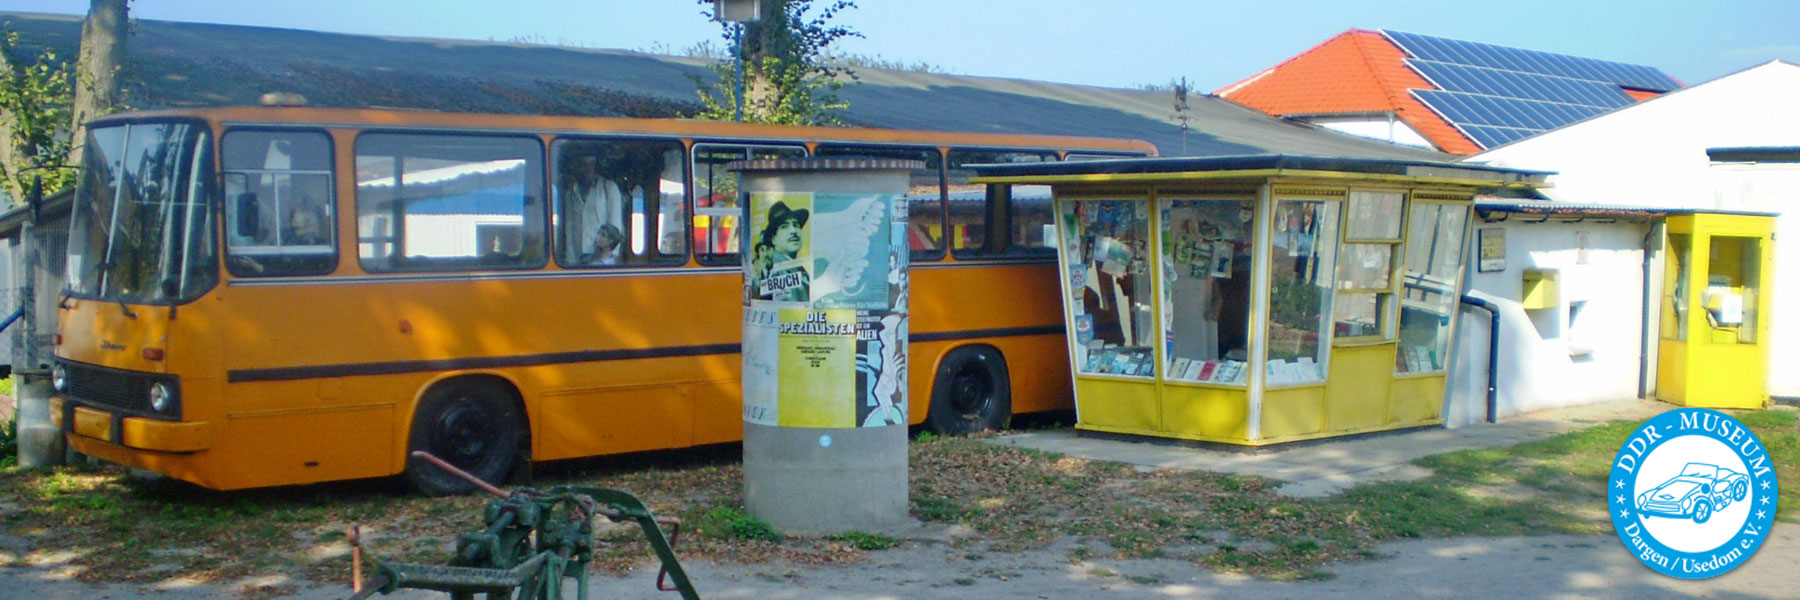 Bus und Kiosk - DDR-Museum Dargen / Usedom e.V.